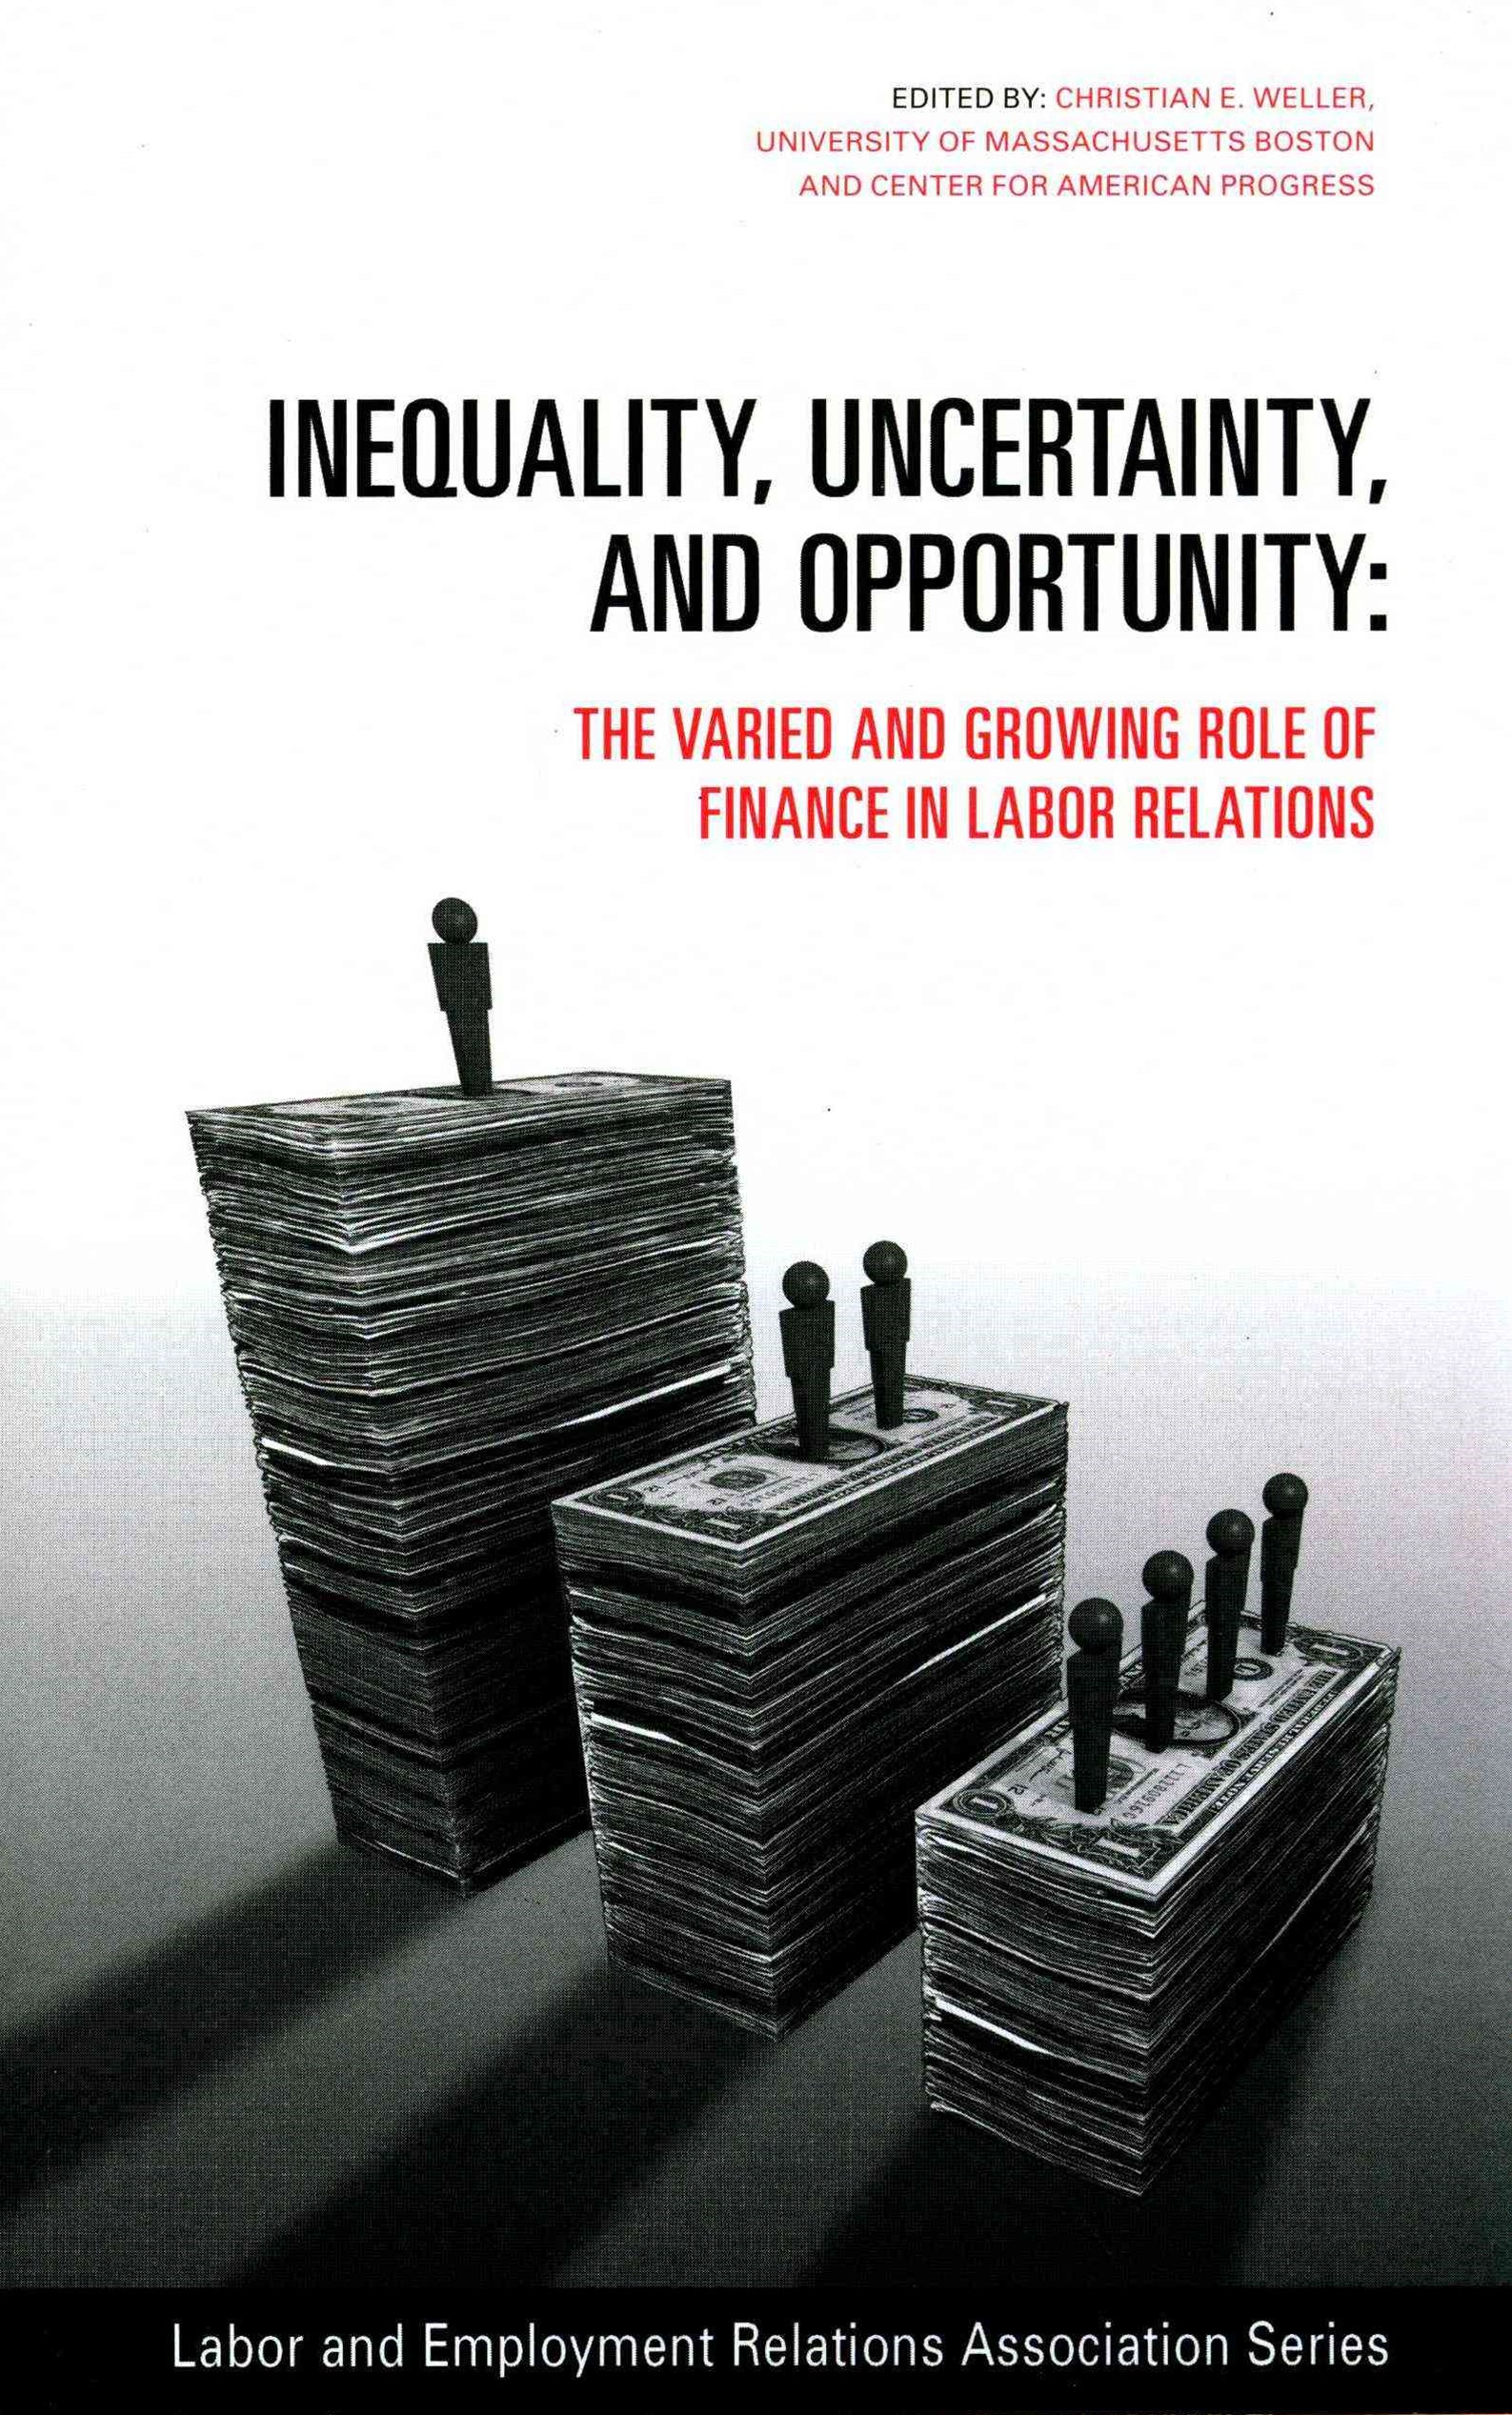 Inequality, Uncertainty, and Opportunity